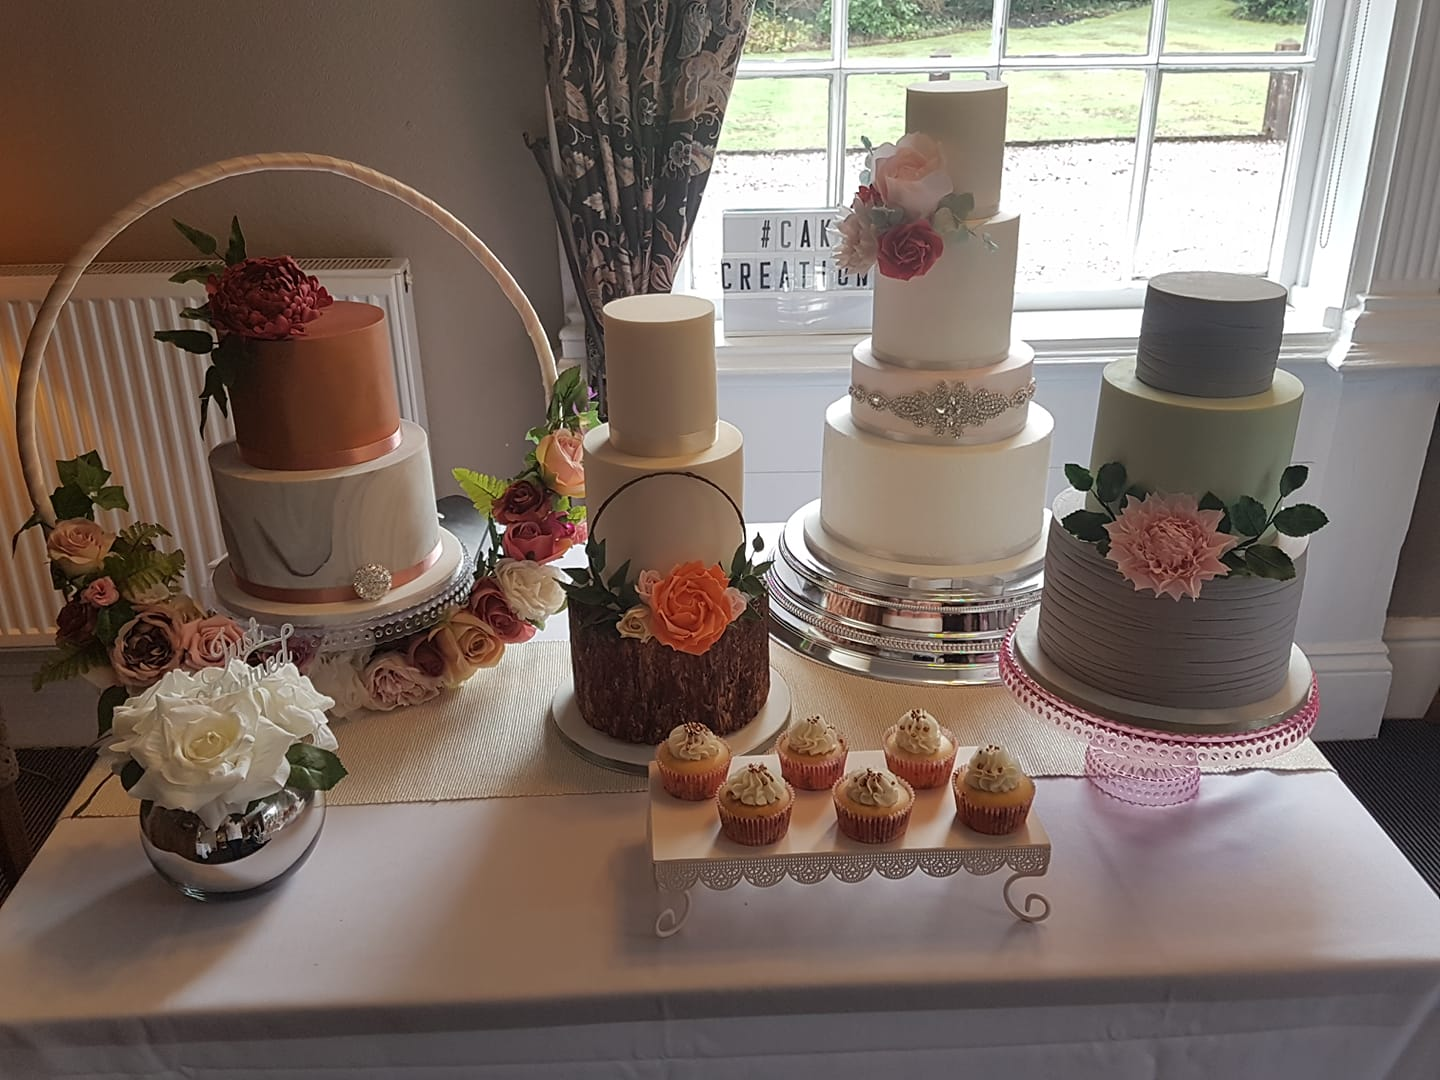 Cake Creations - Absolutely stunning work on show from Dawn at Cake Creations. And those little cupcakes you can see in the picture; we had one of them and were quickly wanting more!Beautiful, intricate work and a lovely personality to boot - what more could you want?!